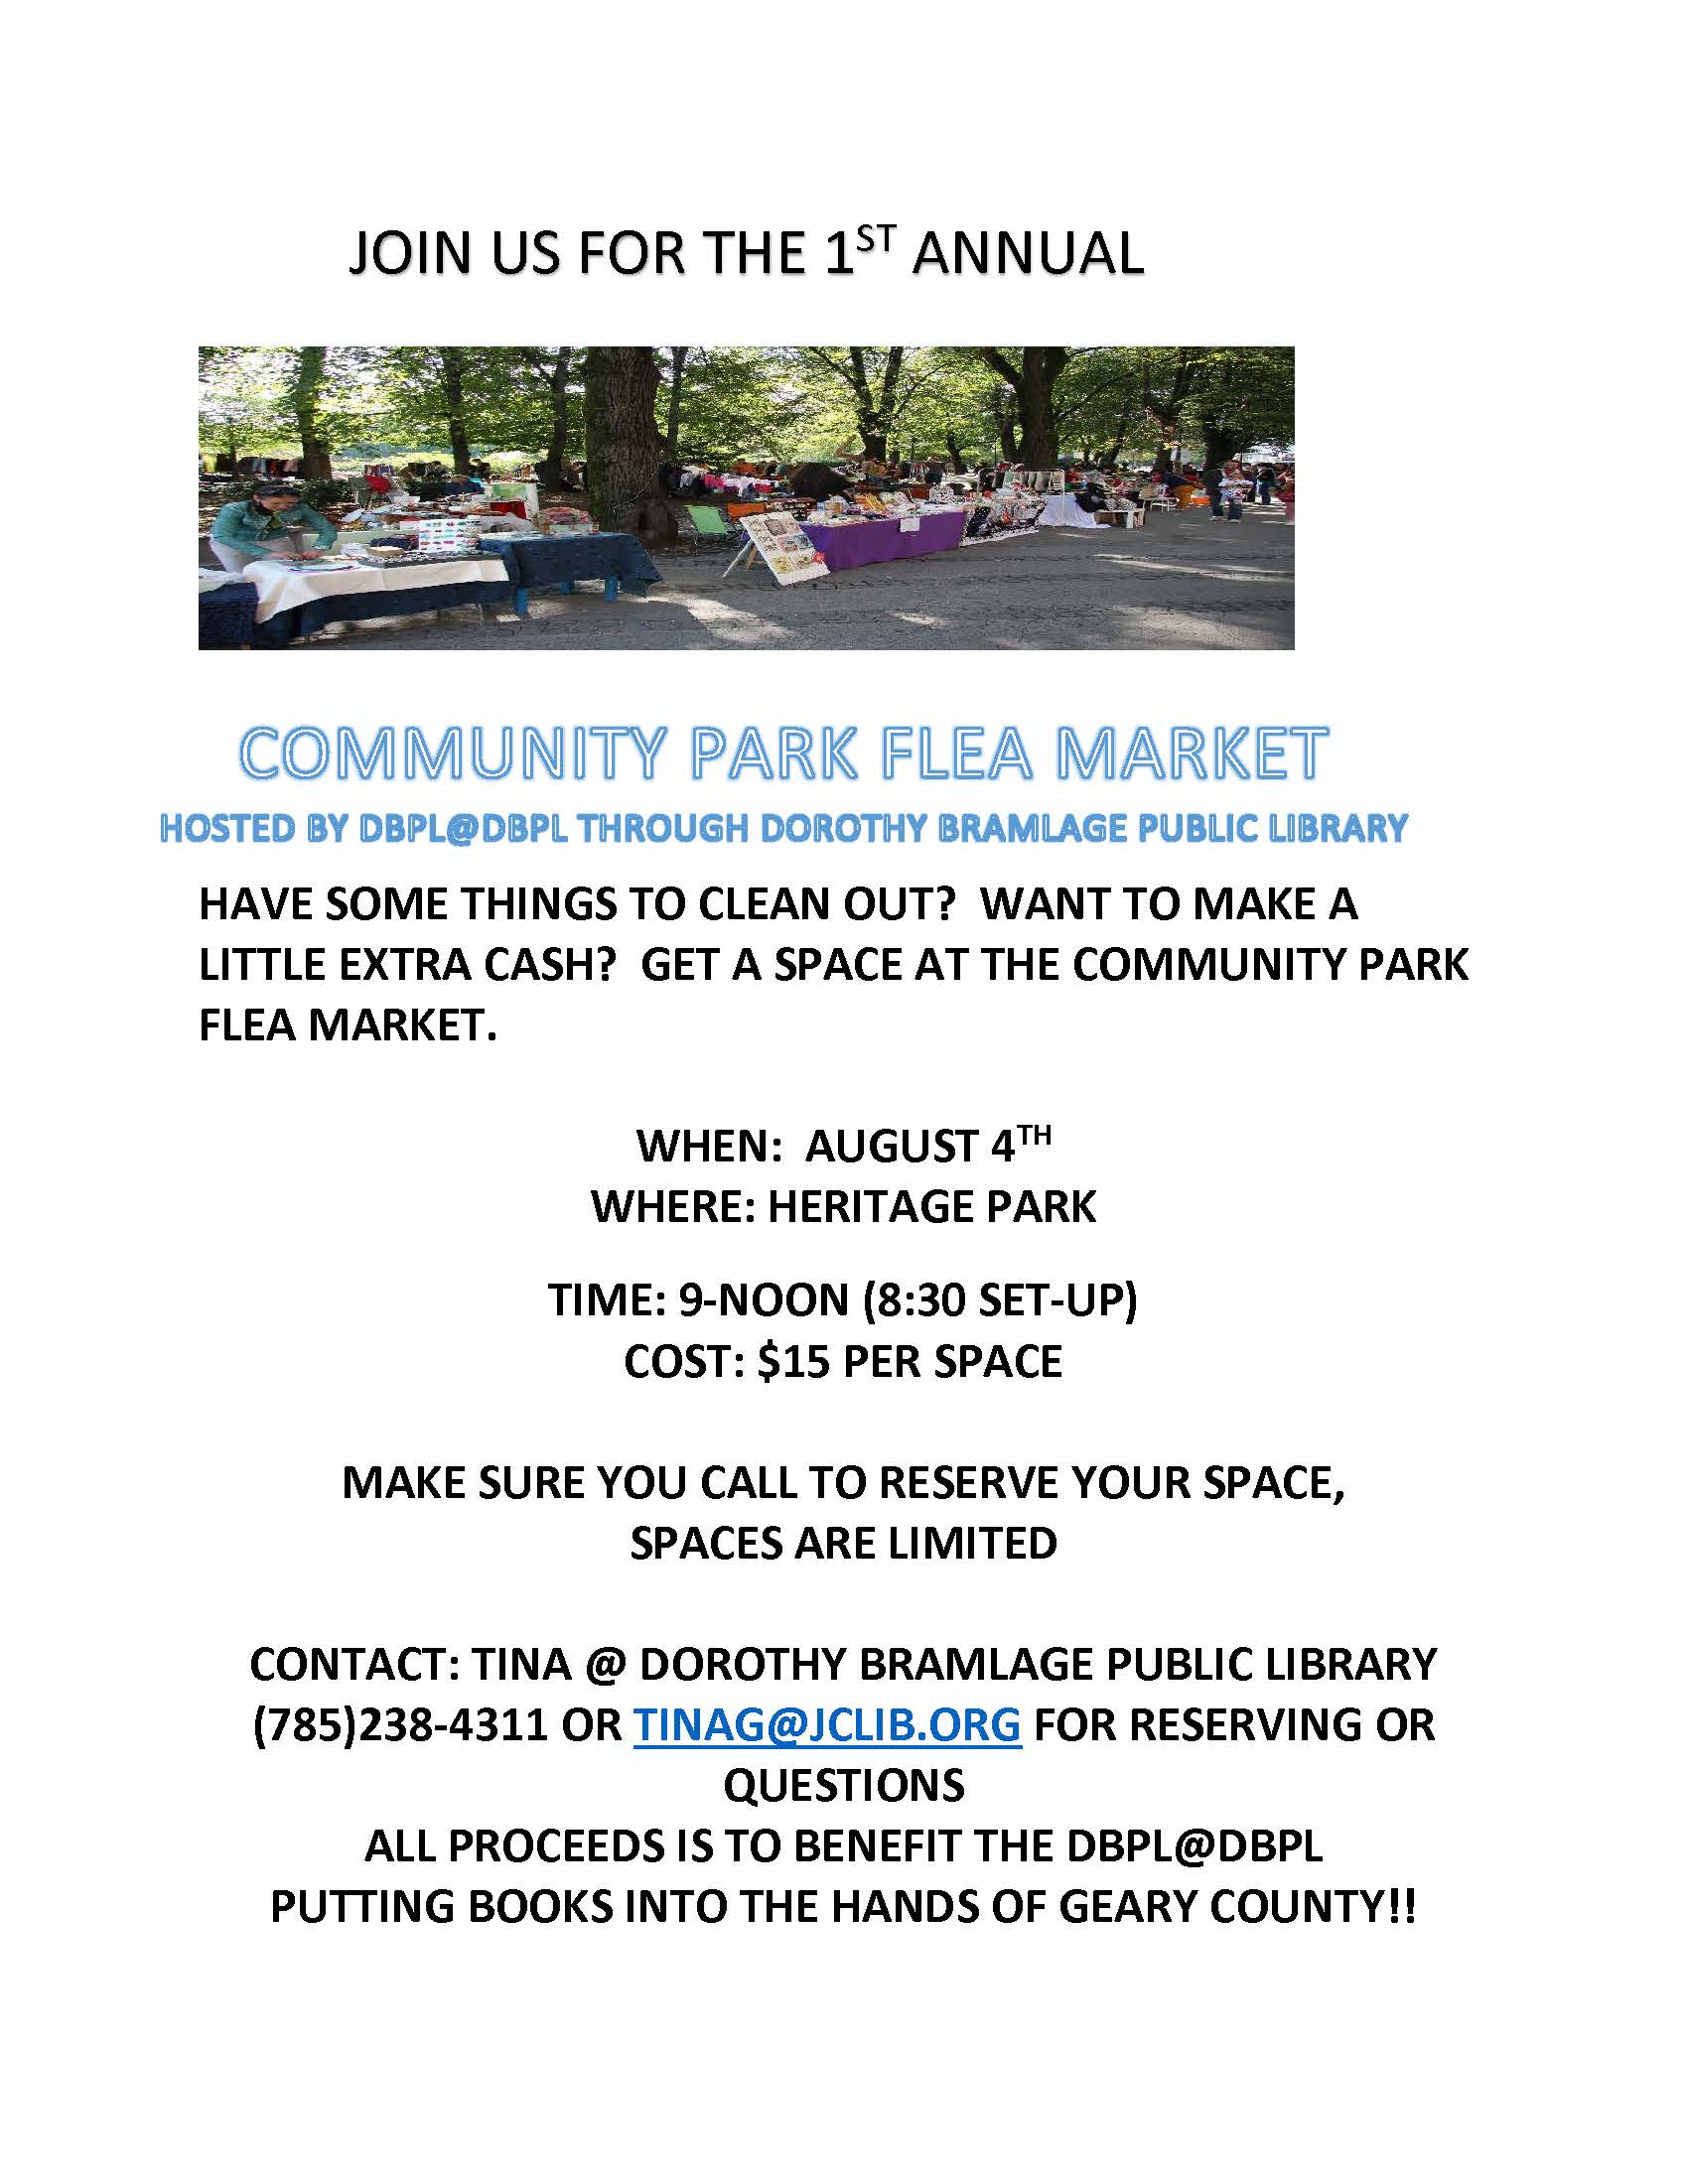 Flyer for the Community Flea Market